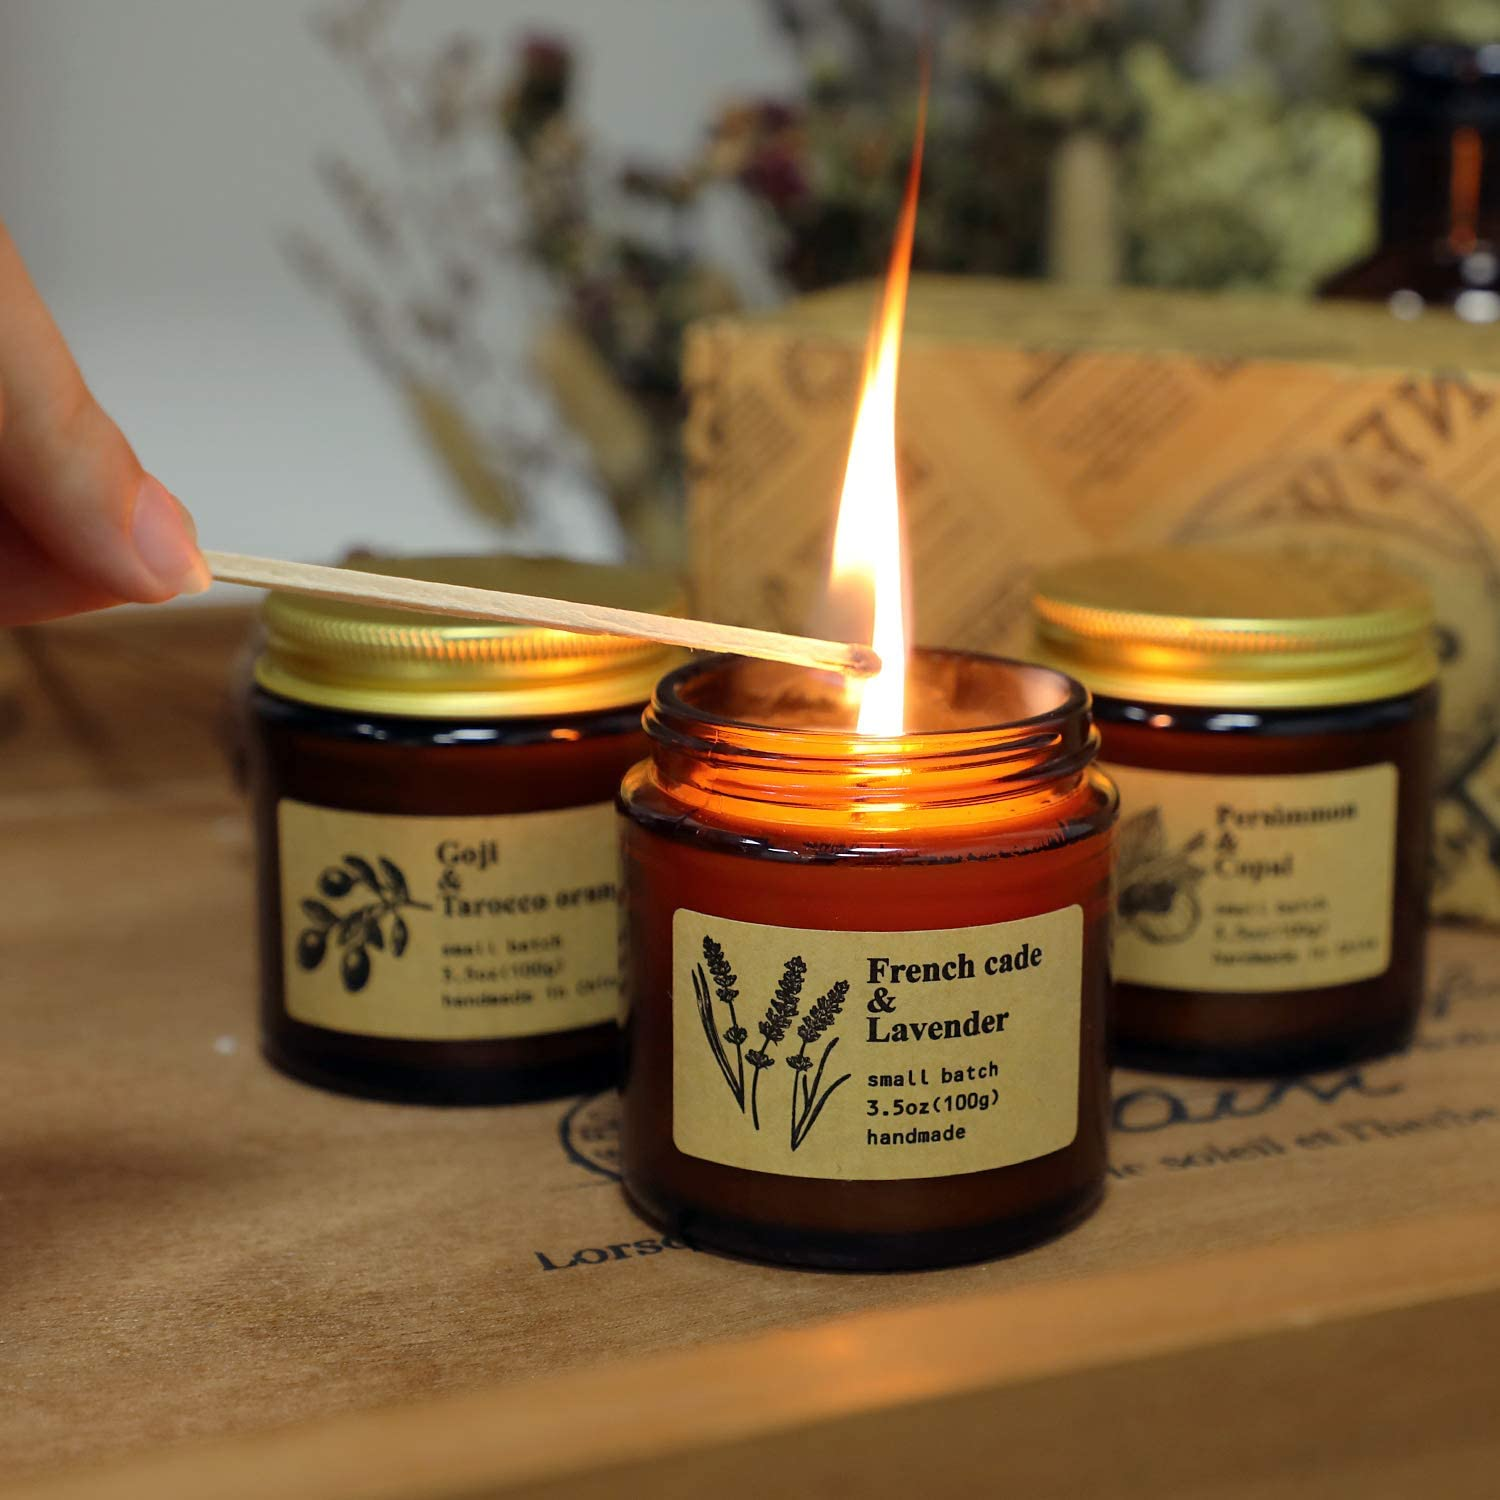 Amber Gold Scented Soya Wax Honey Jar Candle Spicy Scented Middle Eastern ScentHand Poured Fragrance Soya Wax Candle Brand Sheenashona